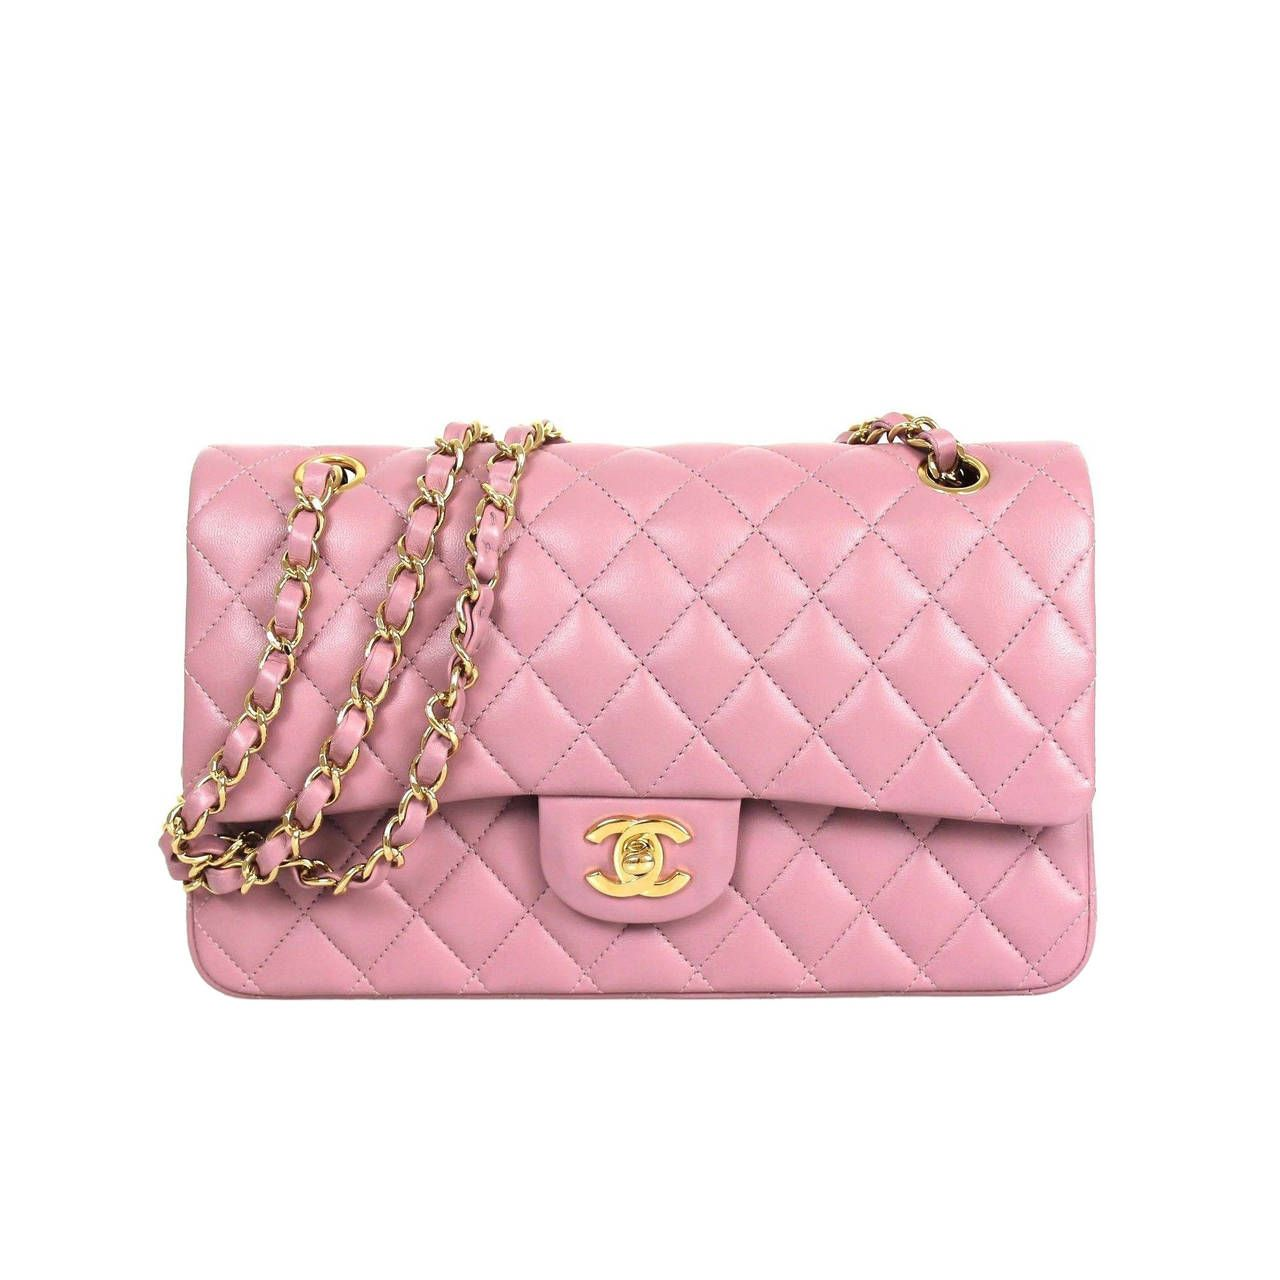 8f32dcc629a6 Chanel Lilac Quilted Lambskin Leather Gold Hdw Medium Double Flap Shoulder  Bag   From a collection